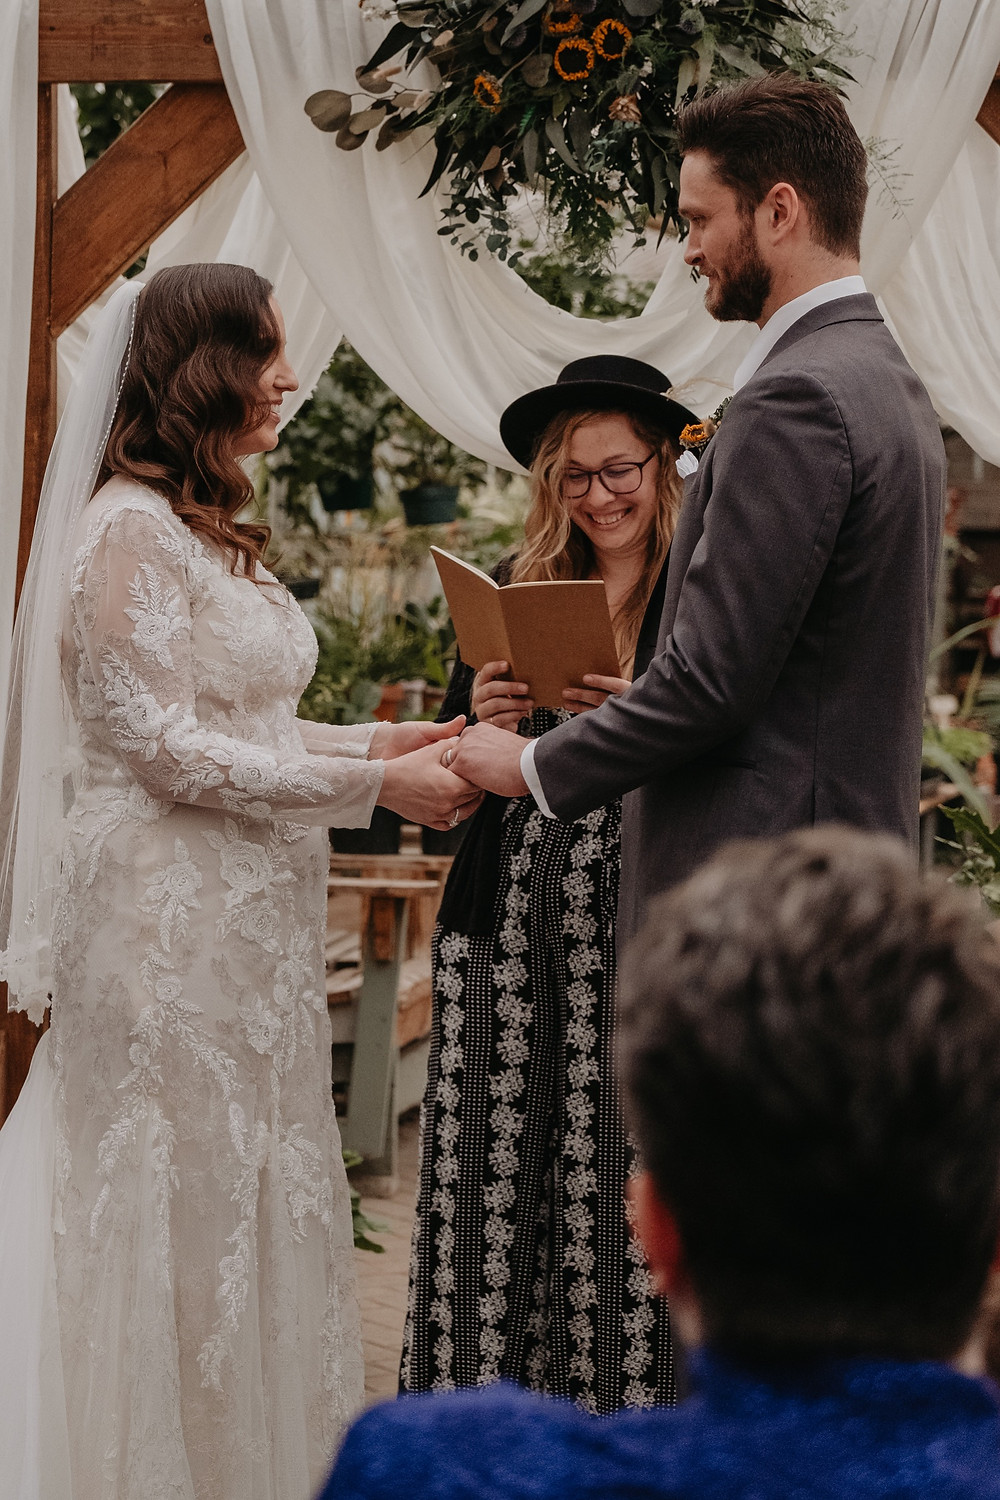 Wedding officiated by The Lost Forty. Photographed by Nicole Leanne Photography.